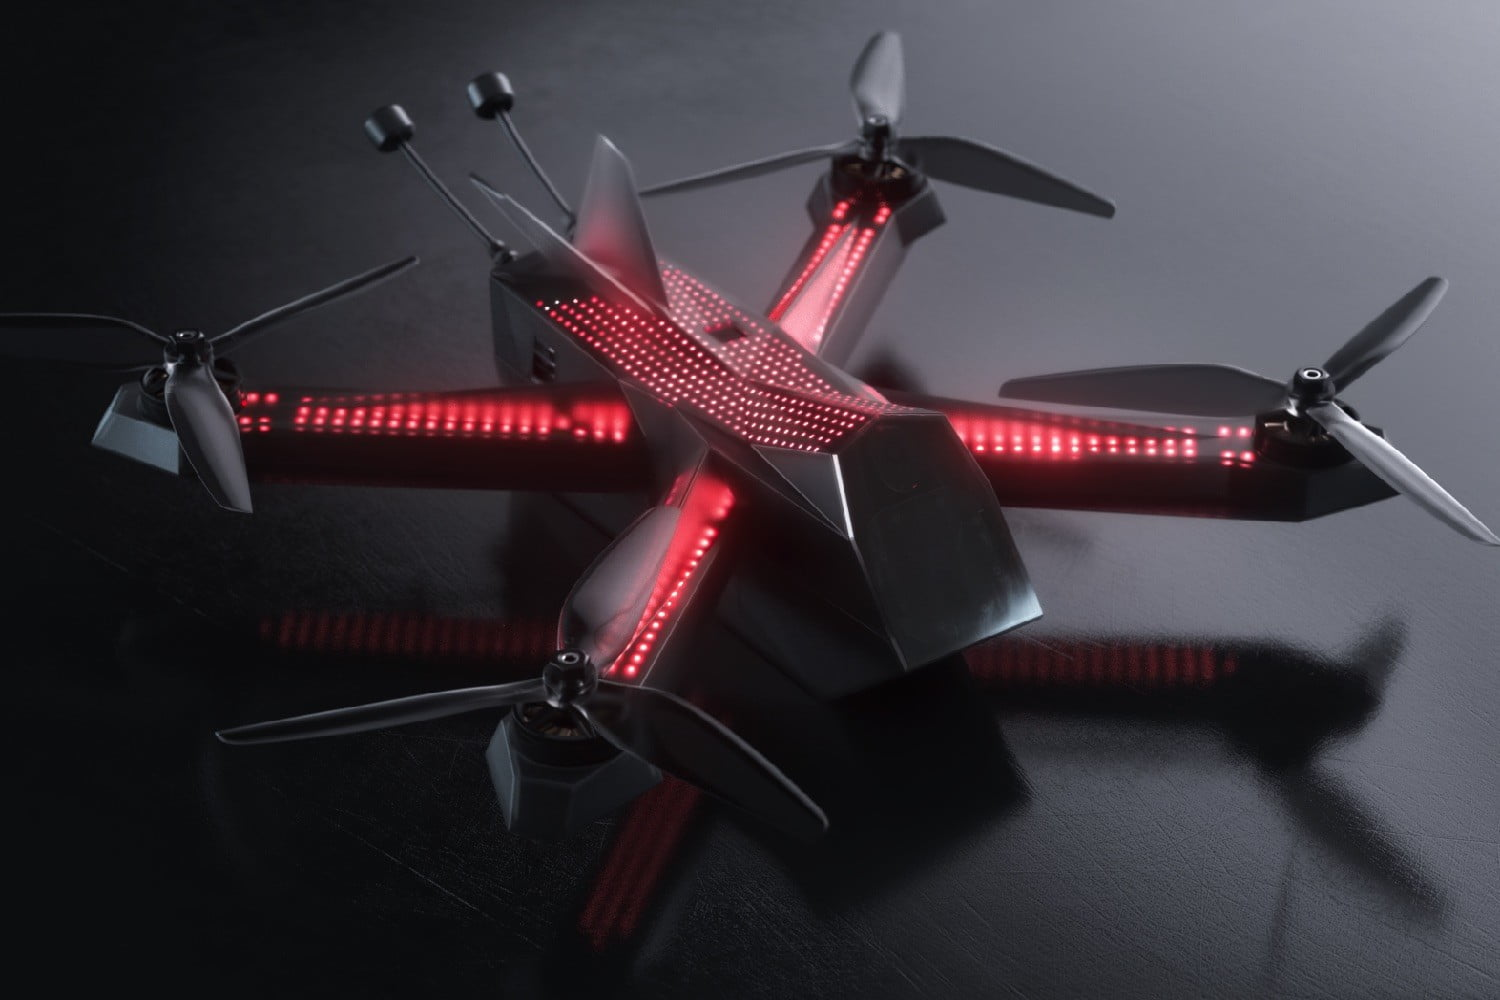 You can get your hands on the Drone Racing League's latest aerial speedster